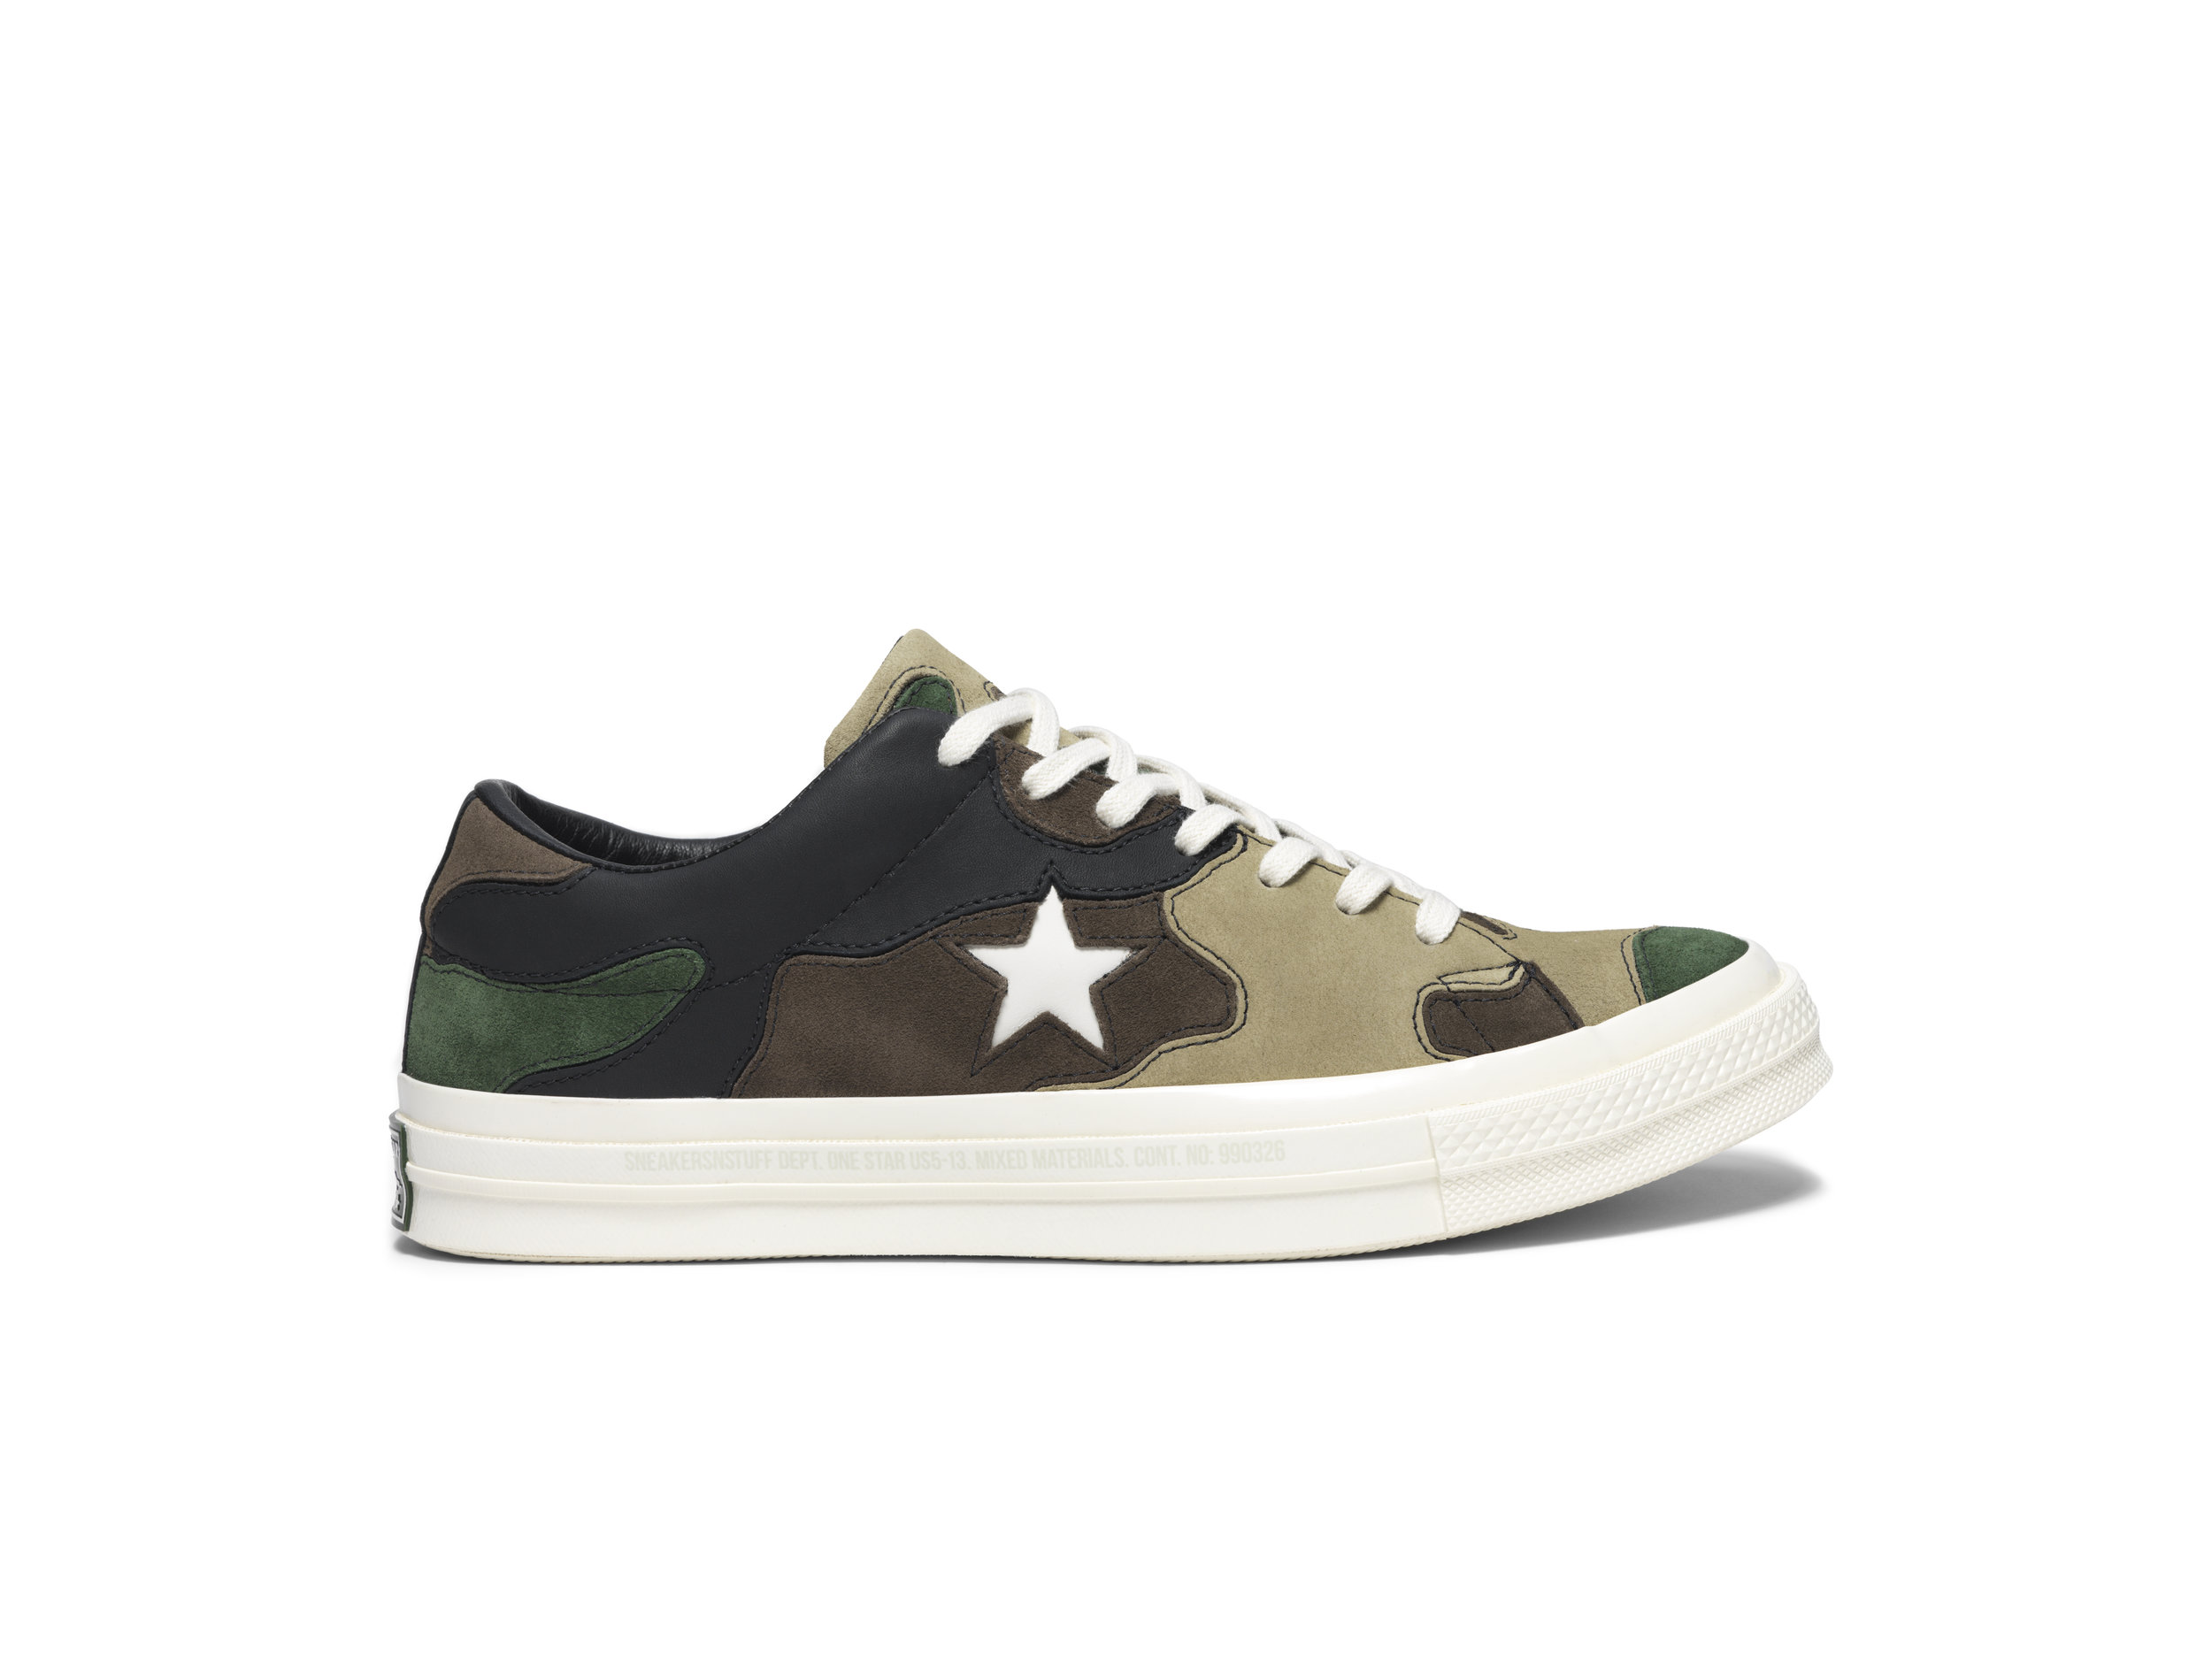 Converse x Sneakersnstuff One Star Ox in Camo — MAJOR